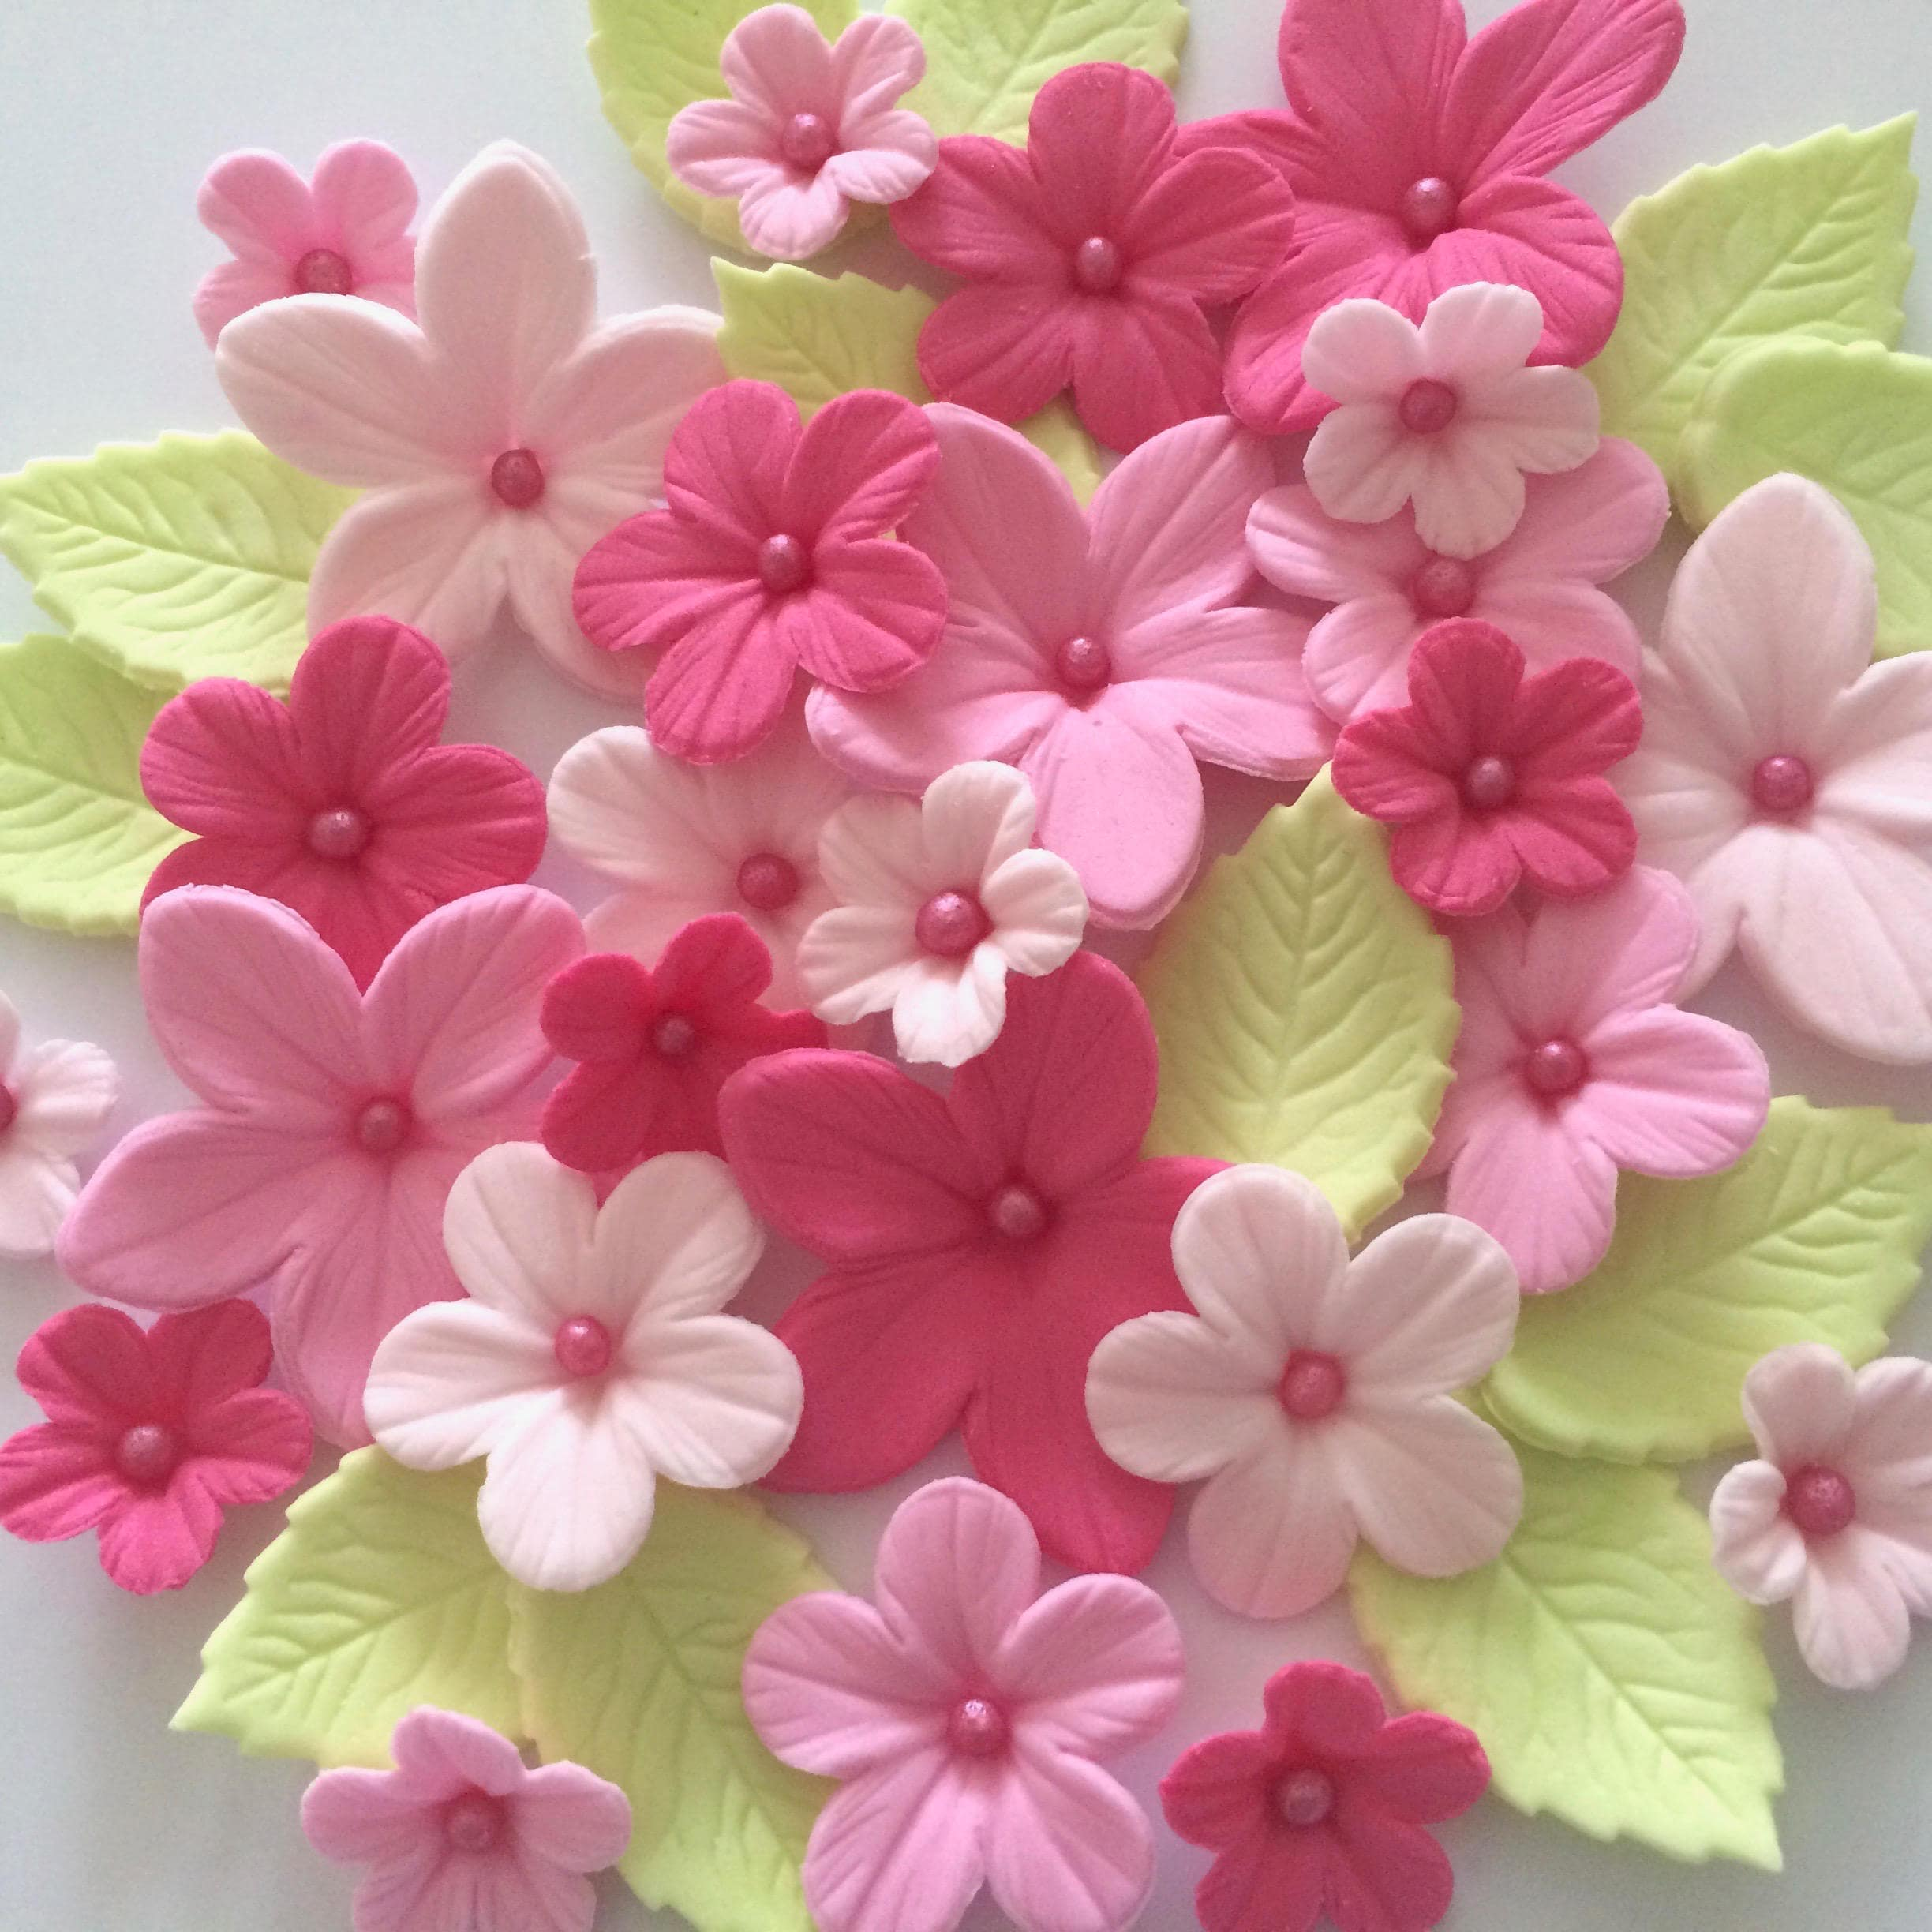 Pink Sugar Flowers Edible Cake Decorations Cupcake Toppers Etsy